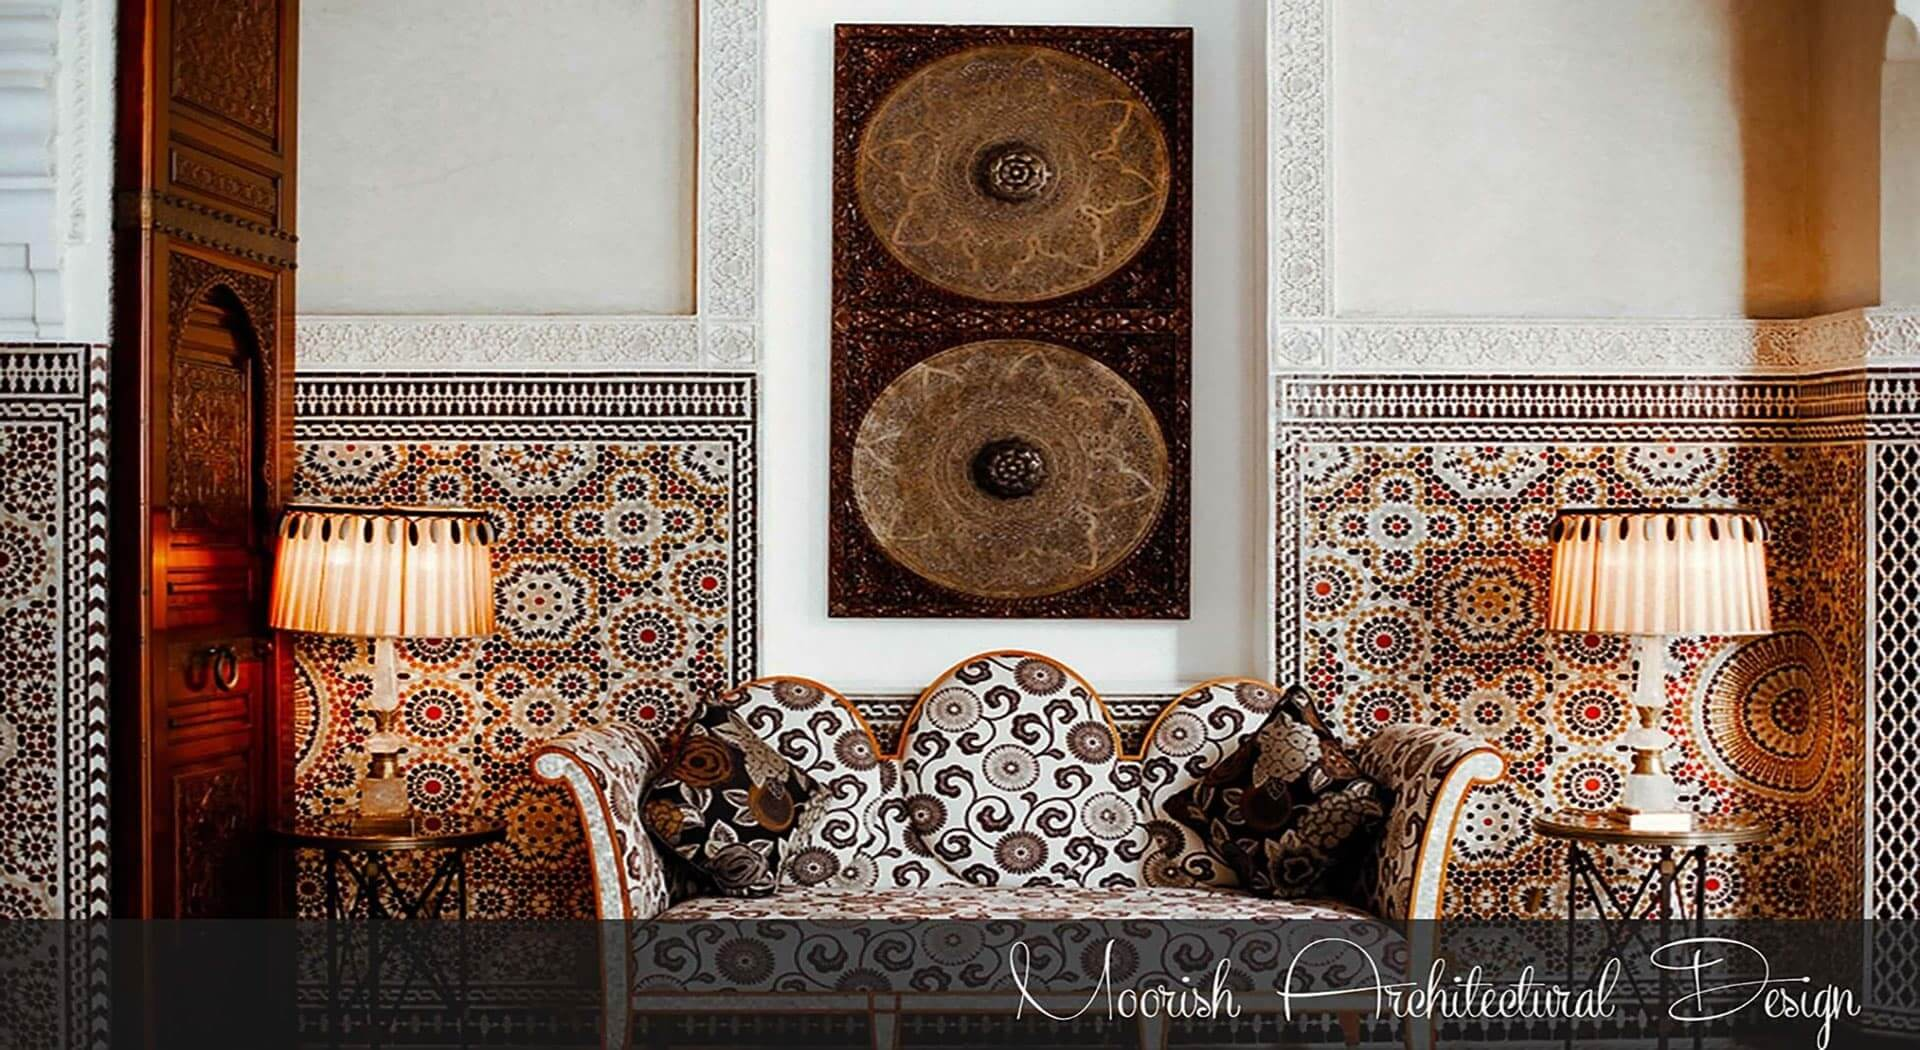 Moorish Tile Moroccan Lamp Jali Wood Lattice Islamic